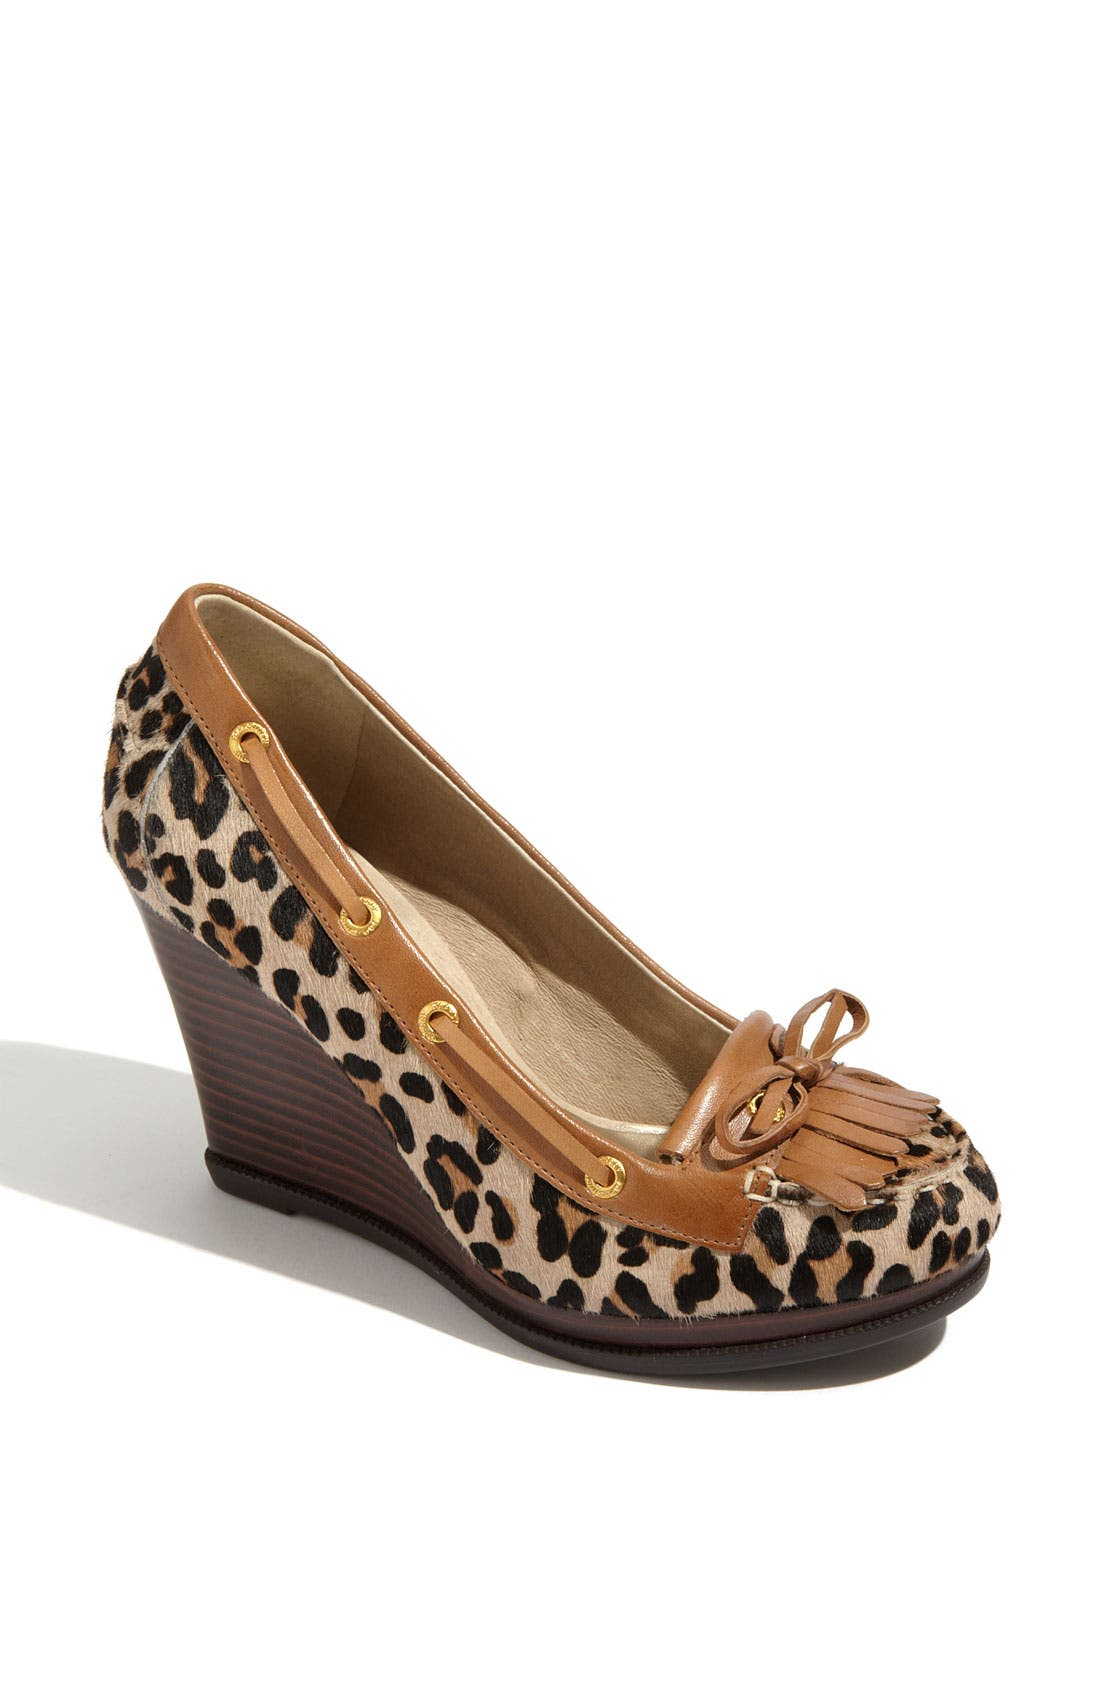 Alternate Image 1 Selected - Sperry Top-Sider® 'Fairwind' Wedge Loafer